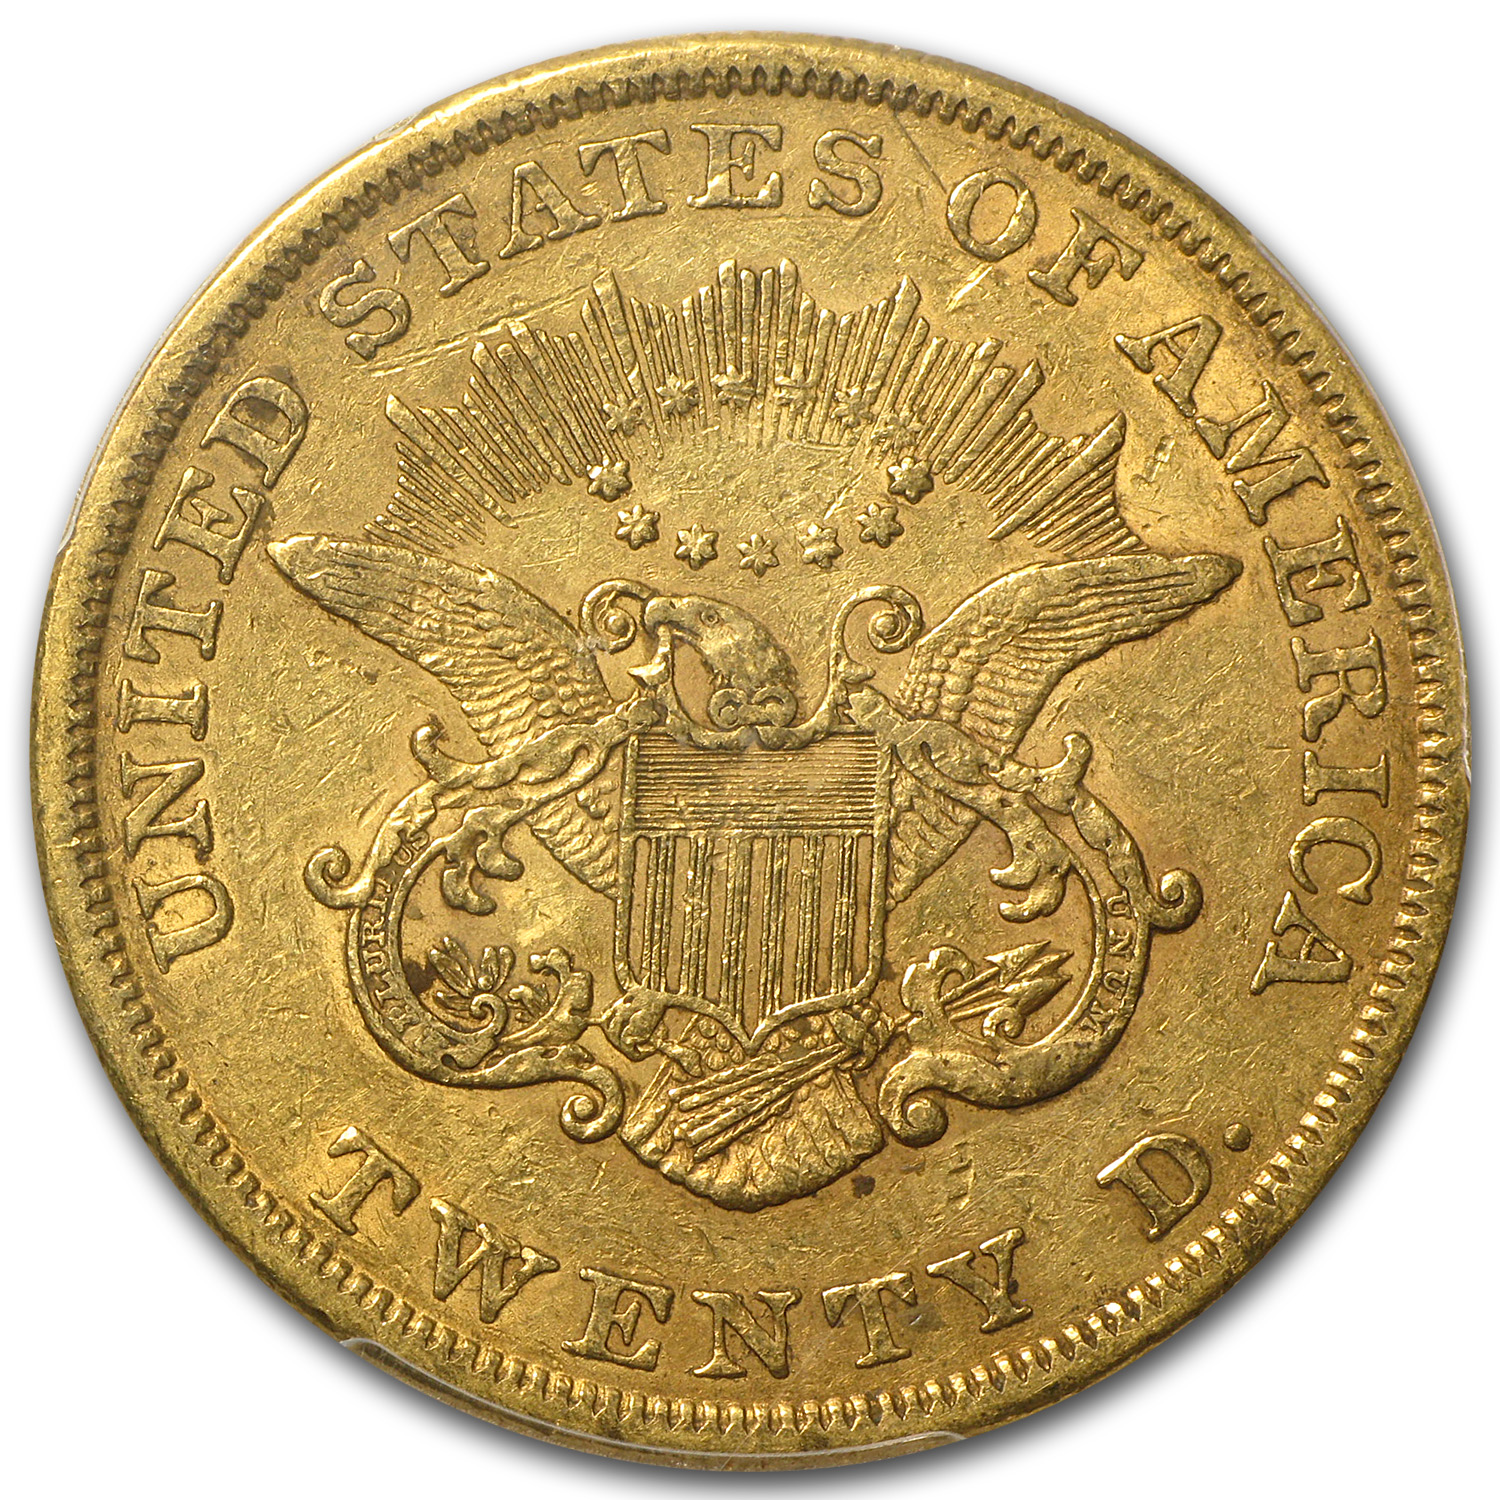 1856 $20 Gold Liberty Double Eagle - XF-40 PCGS